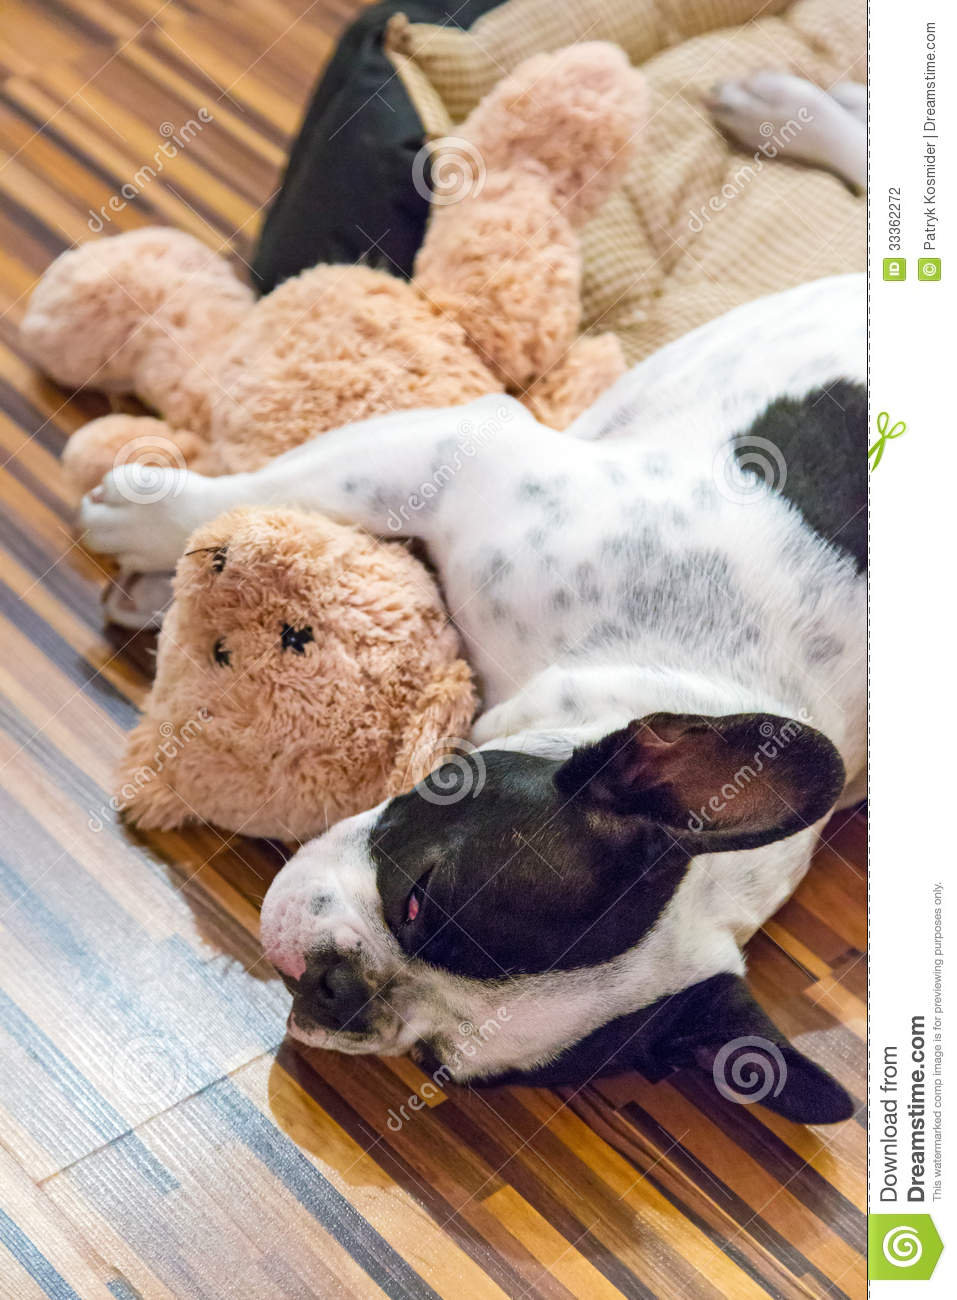 Puppy Sleeping With Teddy Bear Stock Photo - Image: 33362272